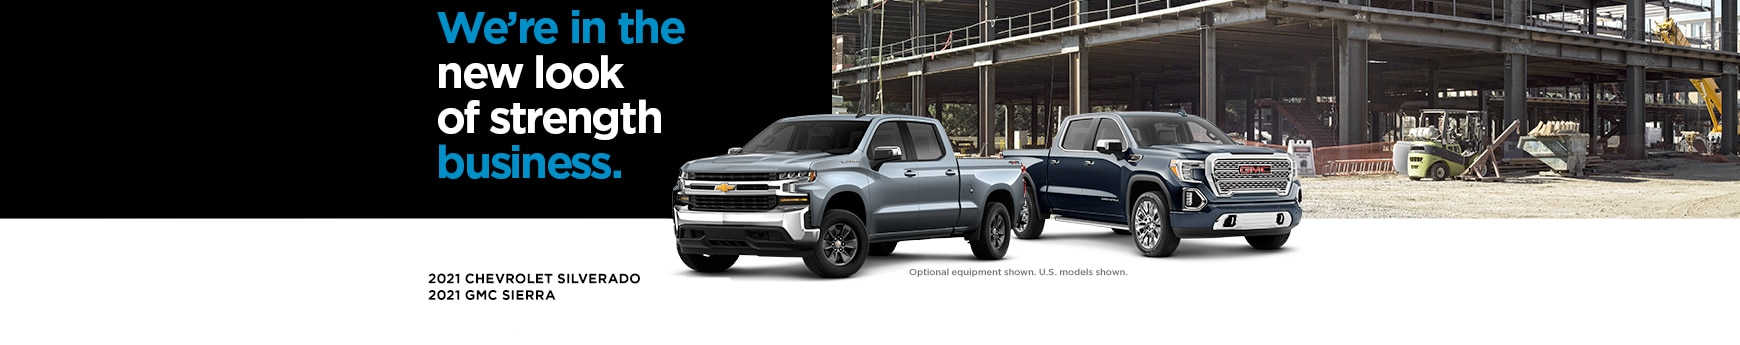 We're In The New Look Of Strength Business: 2021 Chevrolet Silverado And 2021 GMC Sierra Pickup Truck.